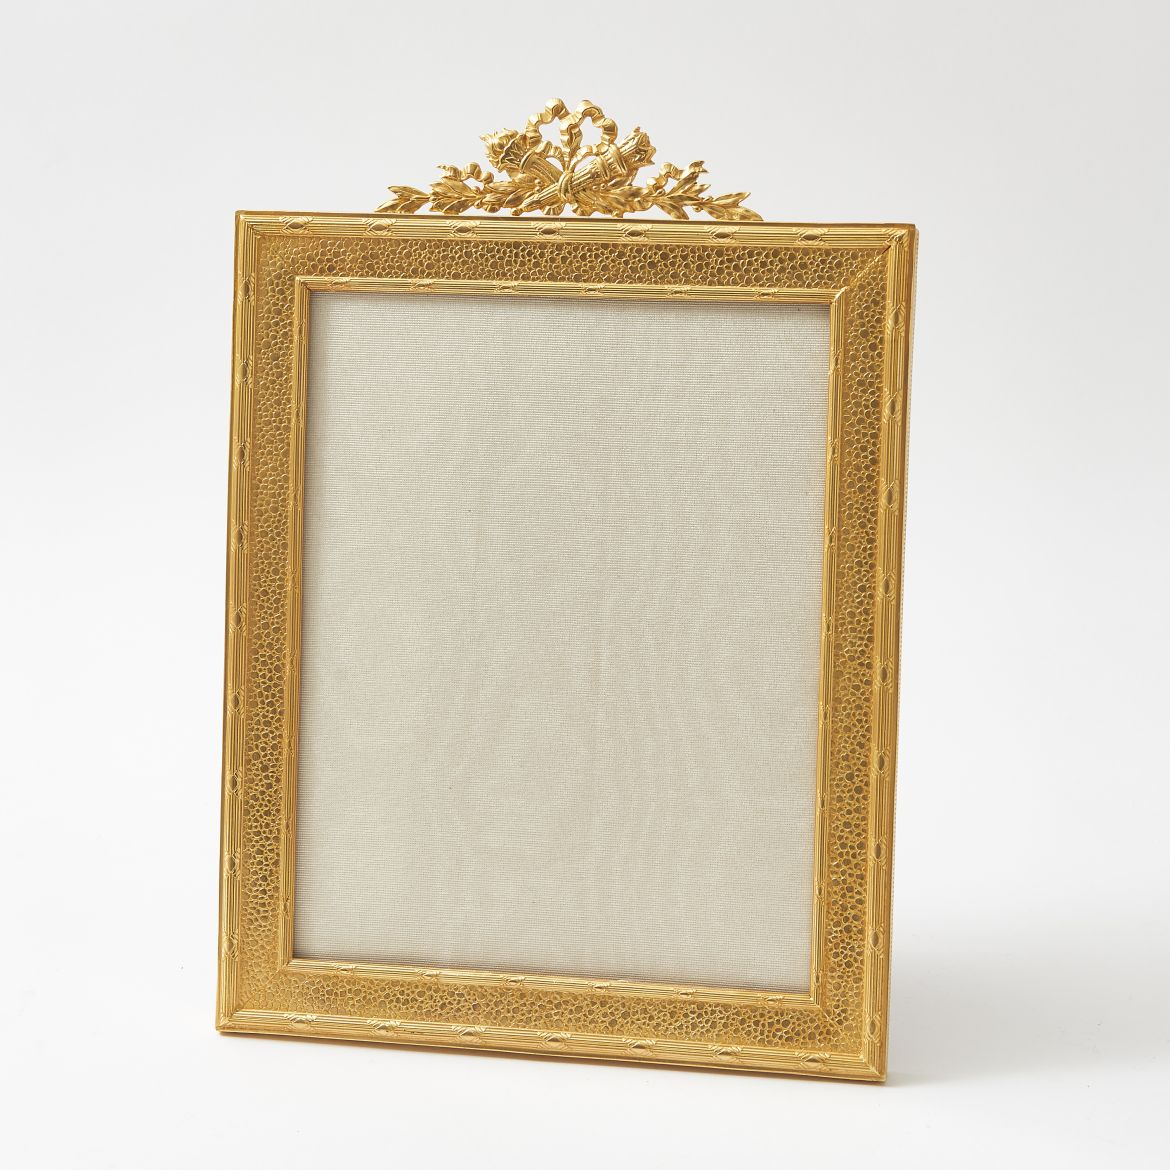 Photo Frame With Textured Border